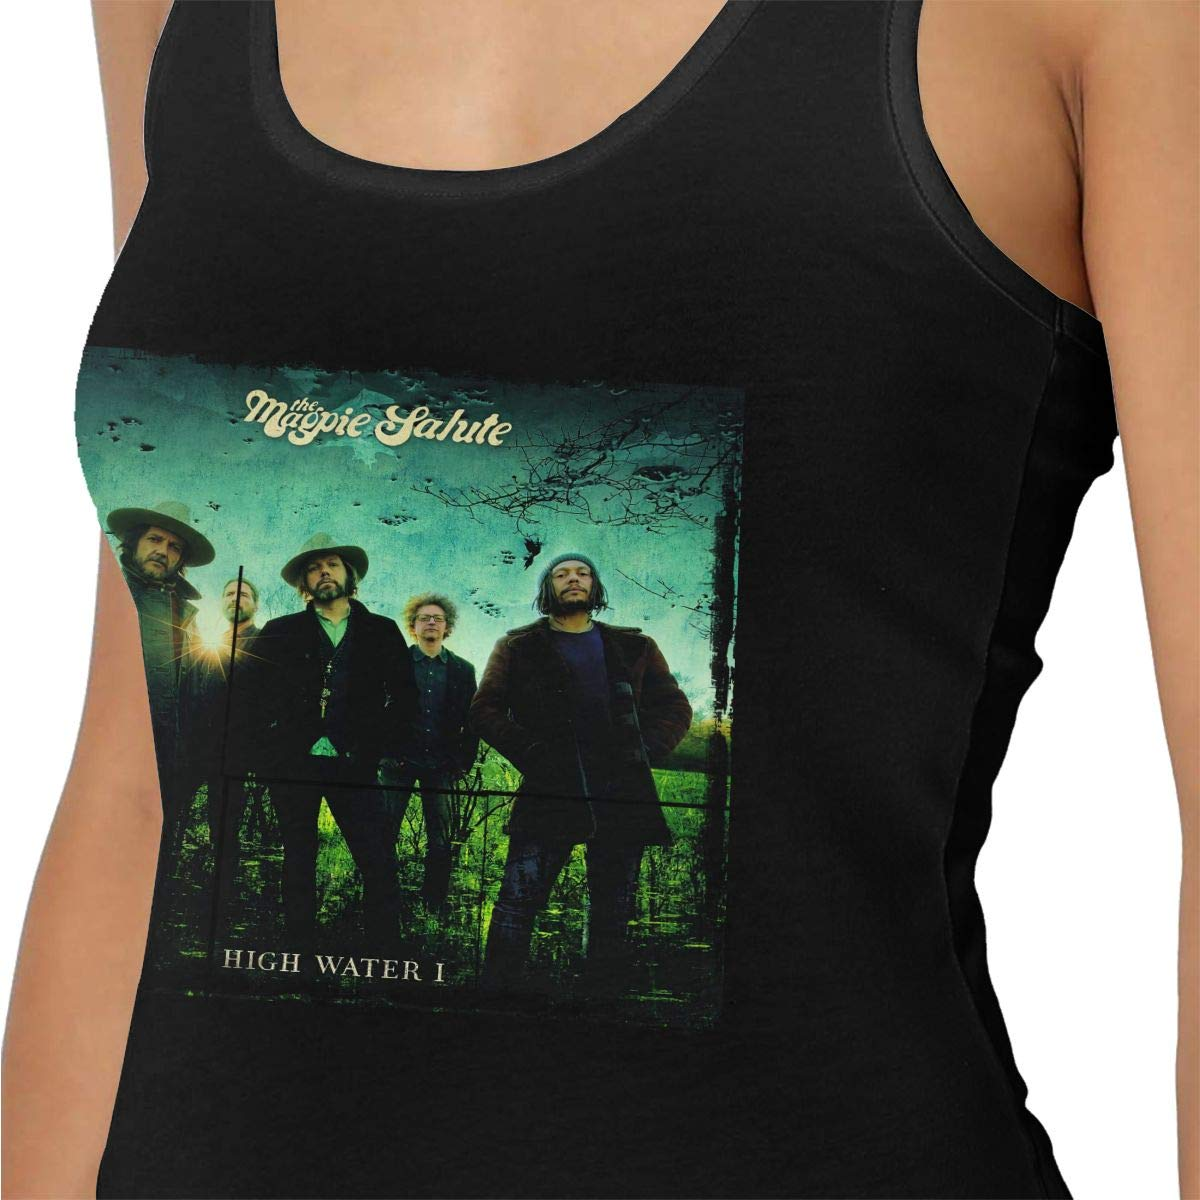 Dwight E Hoskins The Magpie Salute Womans Cotton Running Workouts Clothes Yoga Tank Tops Black